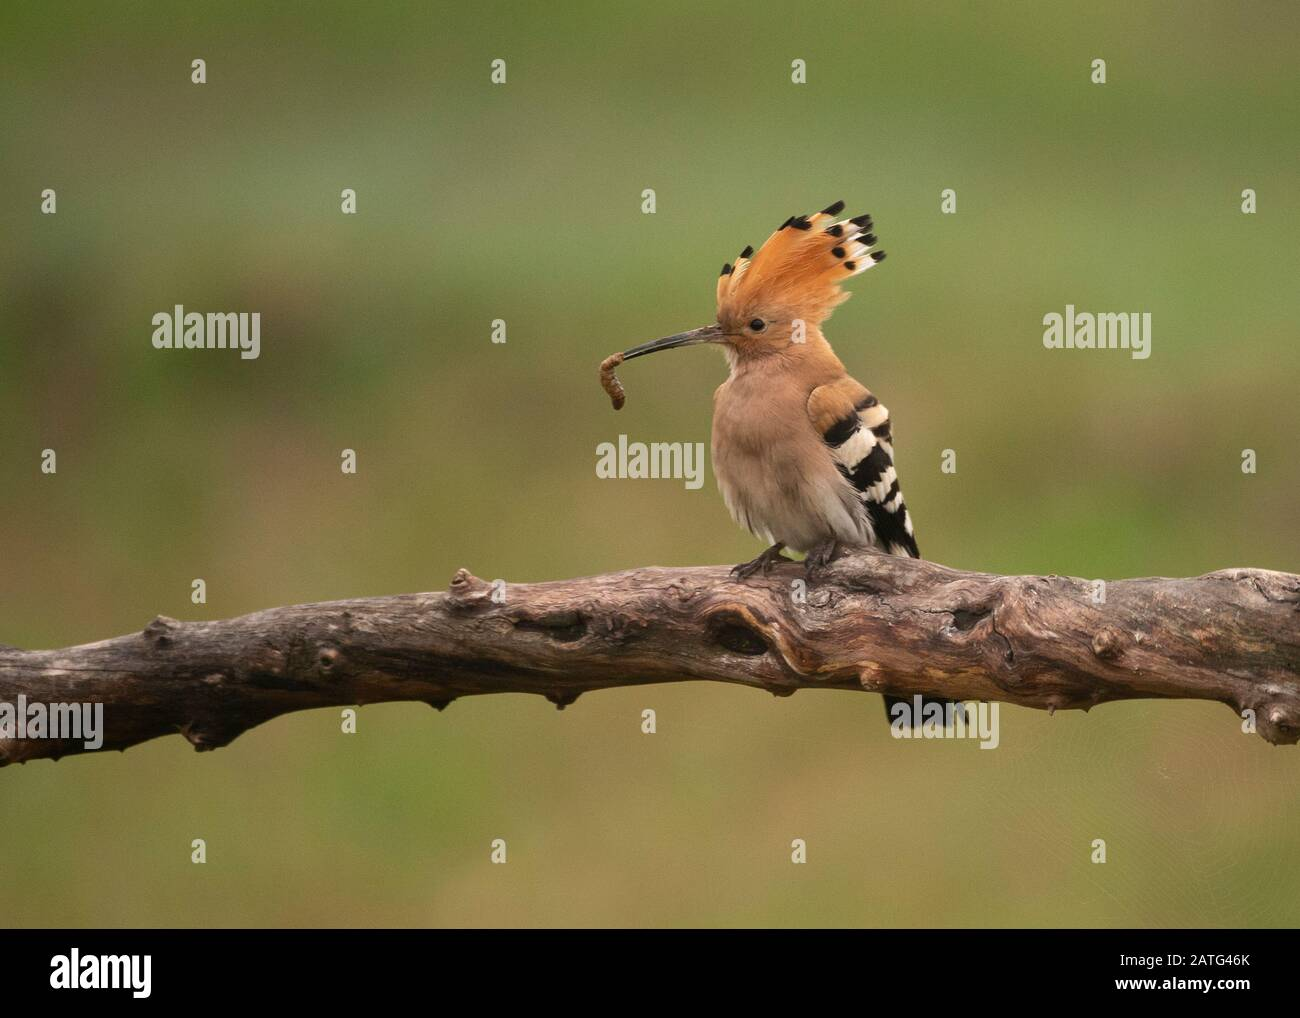 Hoopoe (Upupa epops), sitting on log, with food in its bill, Hortobágy National Park, Hungary Stock Photo